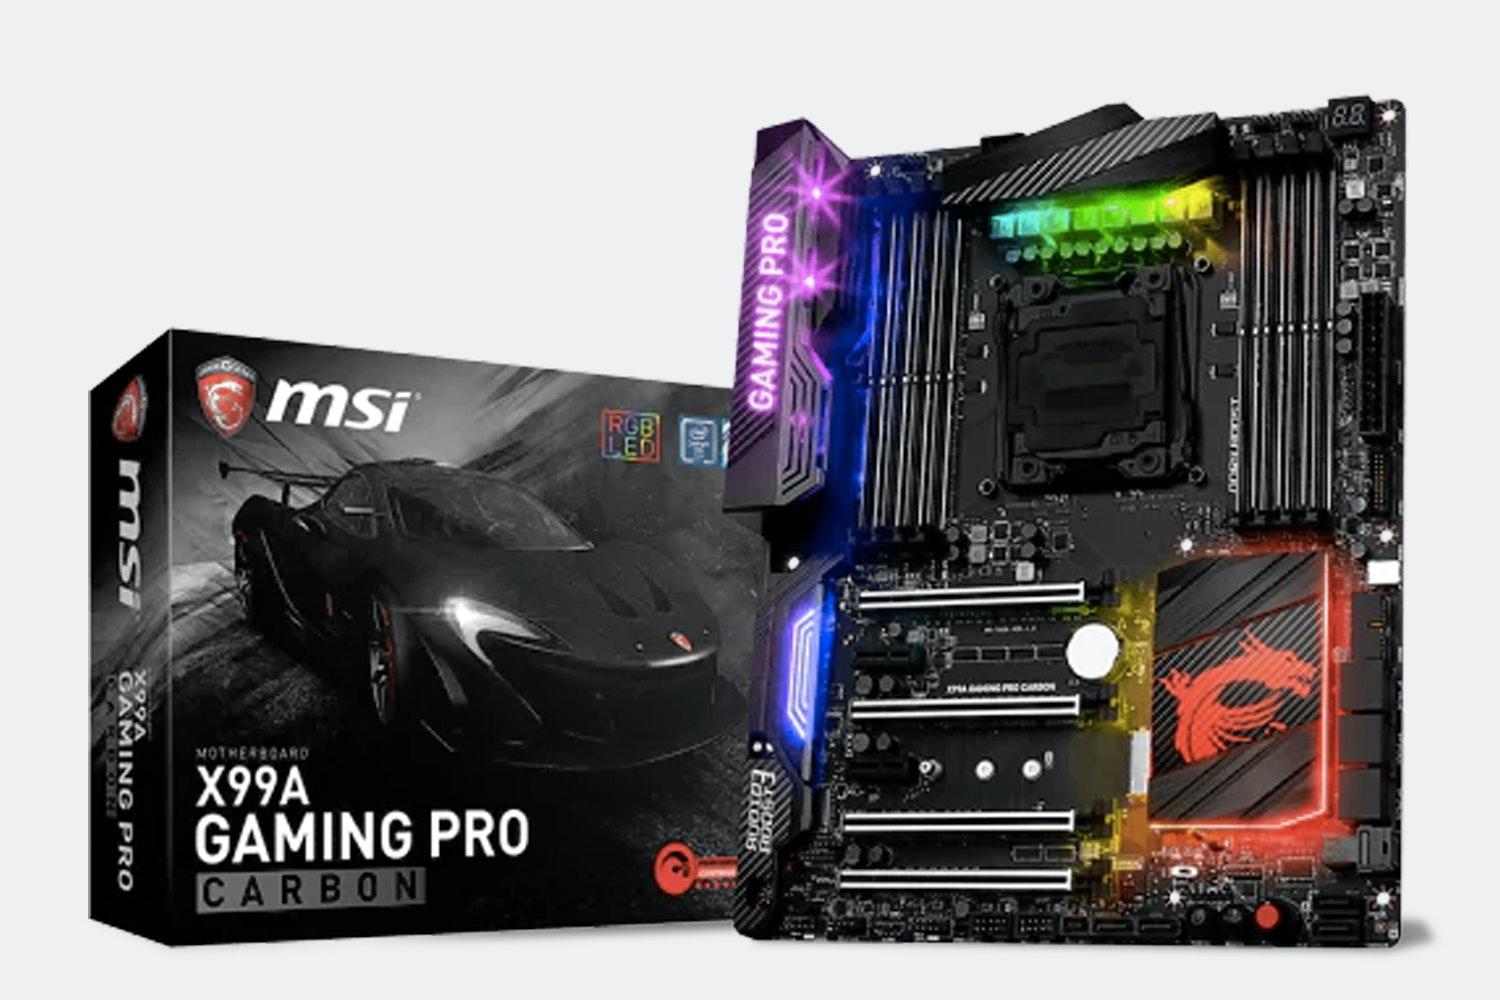 X99A Gaming Pro Carbon (+ $45)